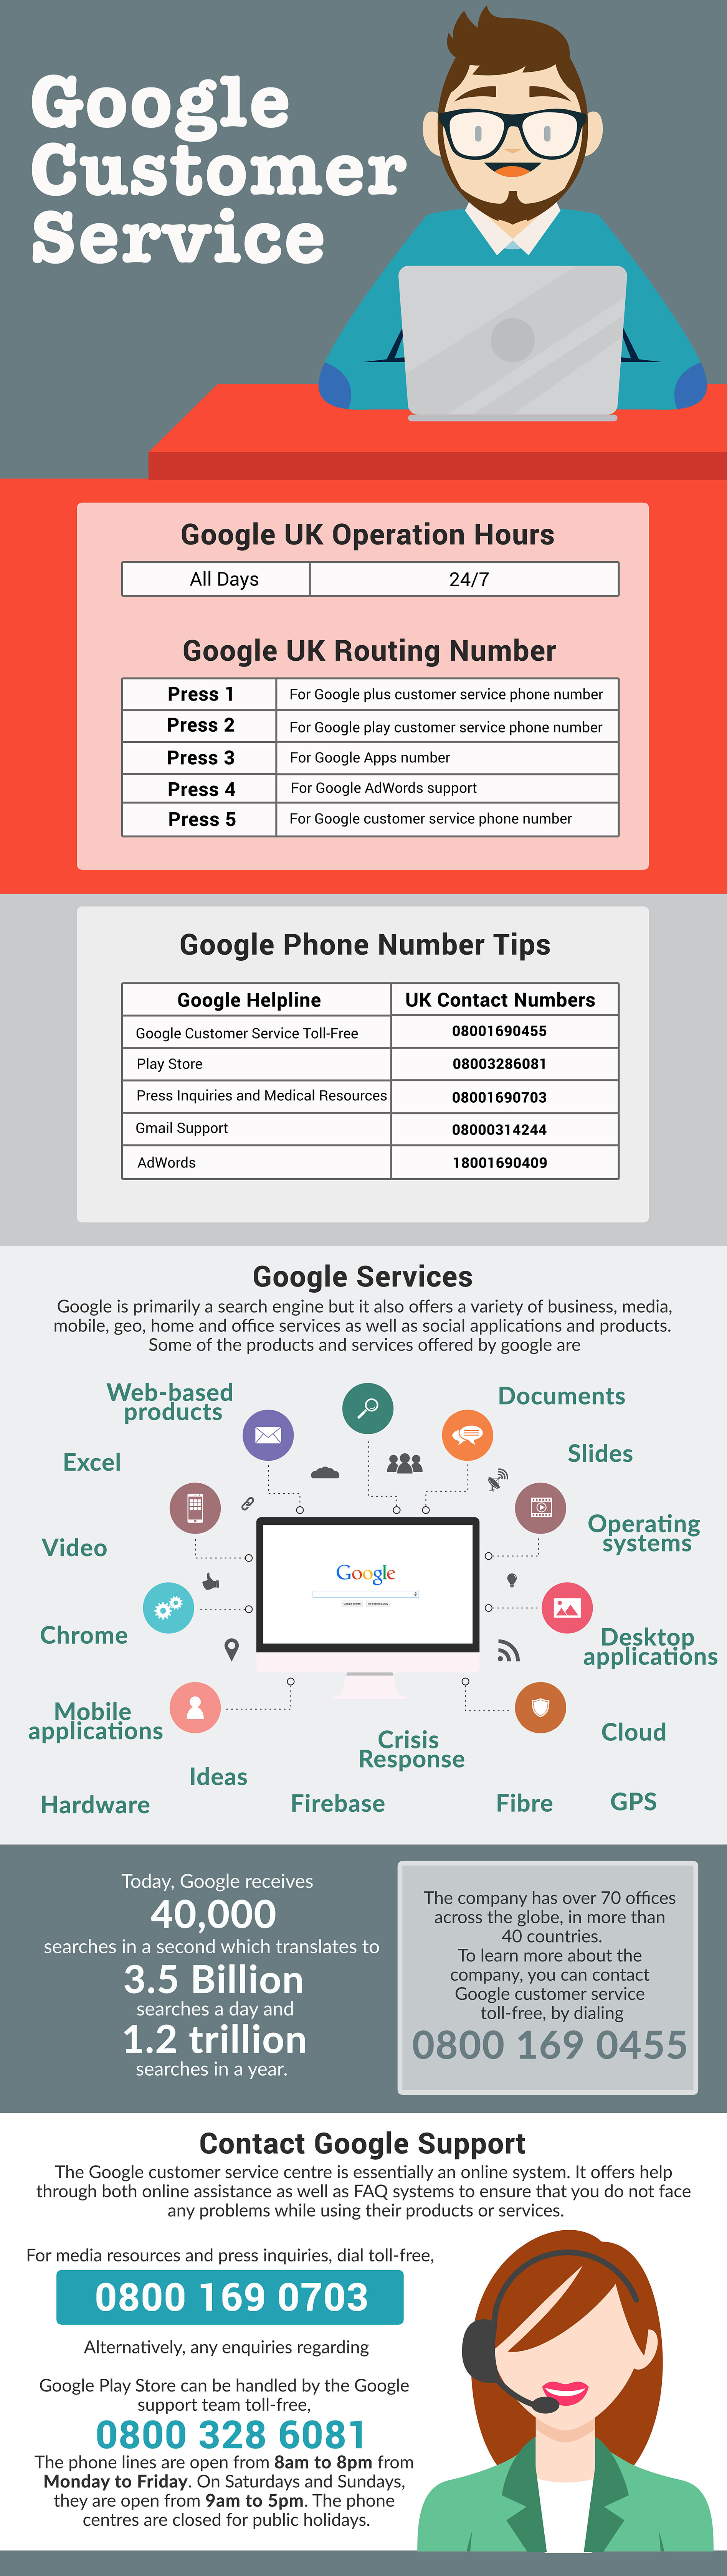 Google Contact Number